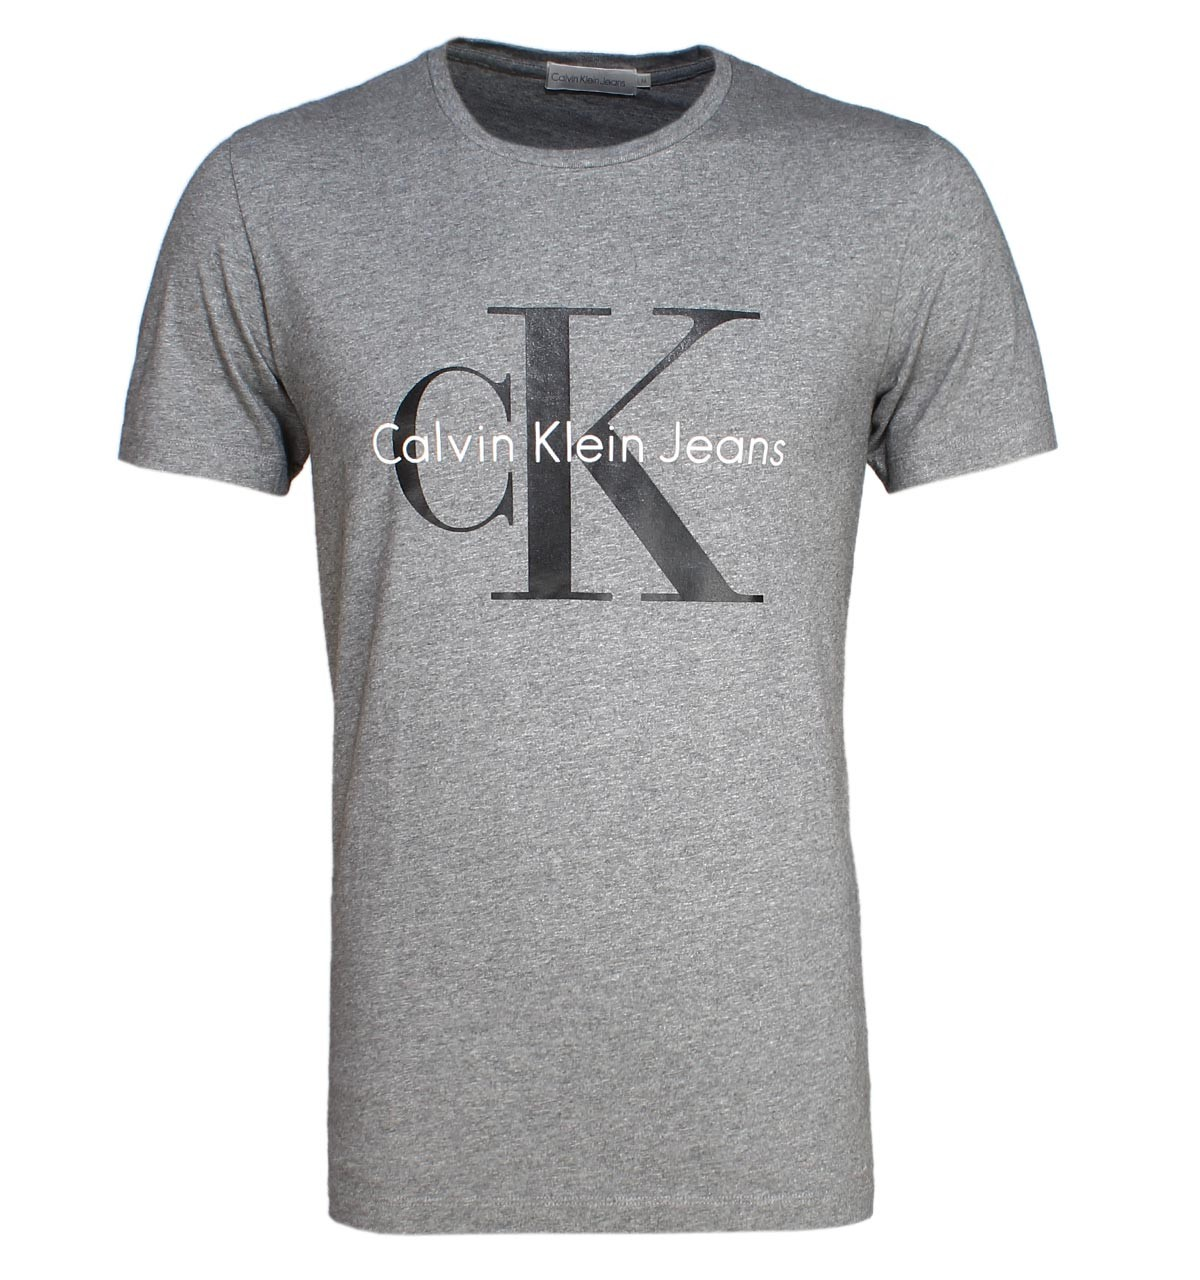 ck calvin klein t shirt. Black Bedroom Furniture Sets. Home Design Ideas